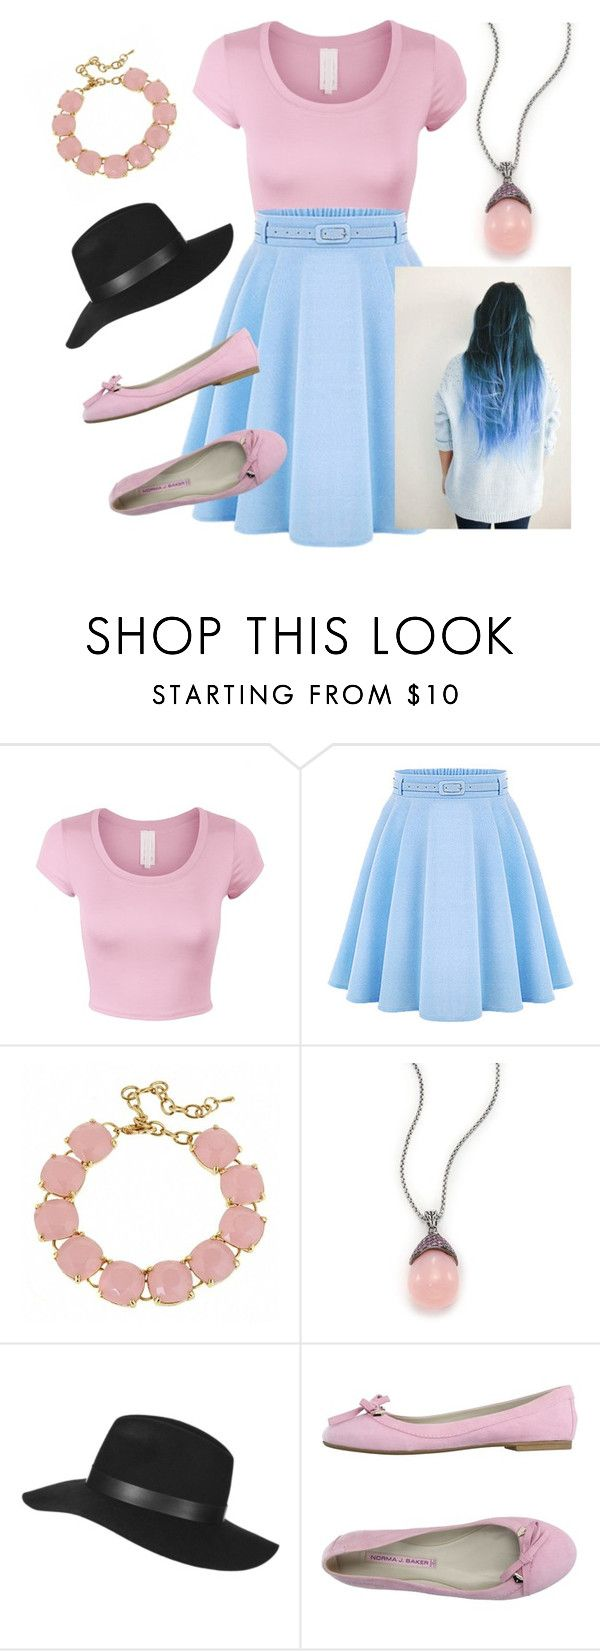 """""""Melanie Martinez Possessed Me 2"""" by peter-pan-in-wonderland ❤ liked on Polyvore featuring Fornash, John Hardy, Topshop and Norma J.Baker"""